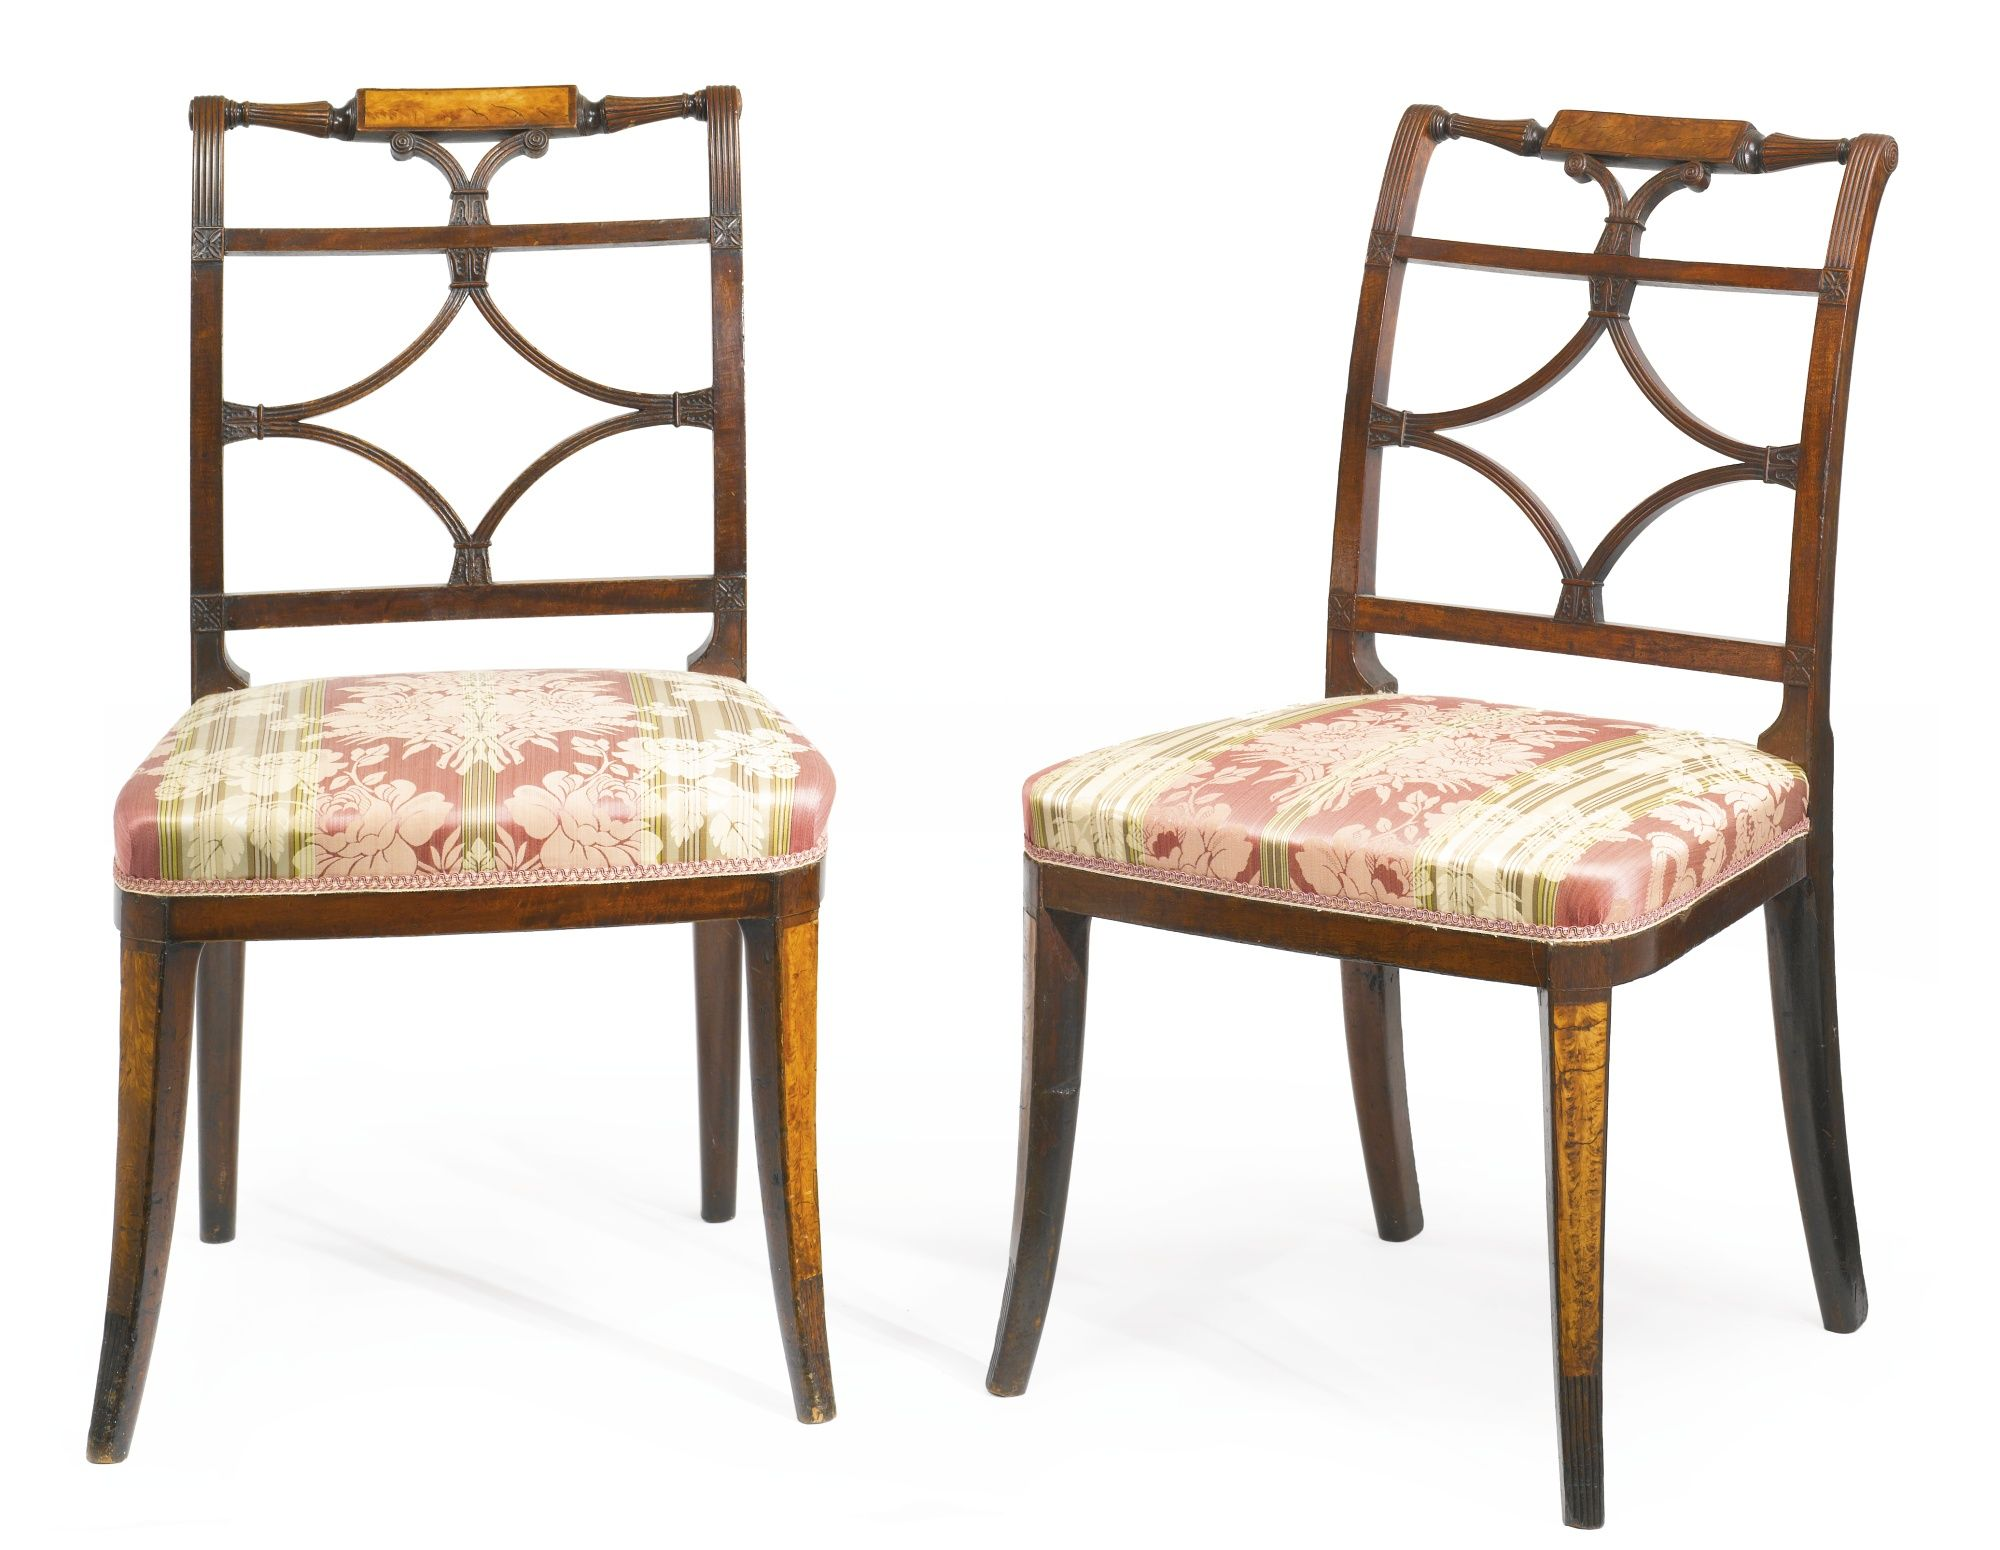 A Very Fine And Rare Pair Of Federal Satinwood Inlaid And Carved Mahogany Sabre Leg Side Chairs Attributed To Thomas S Side Chairs Chair Furniture Design